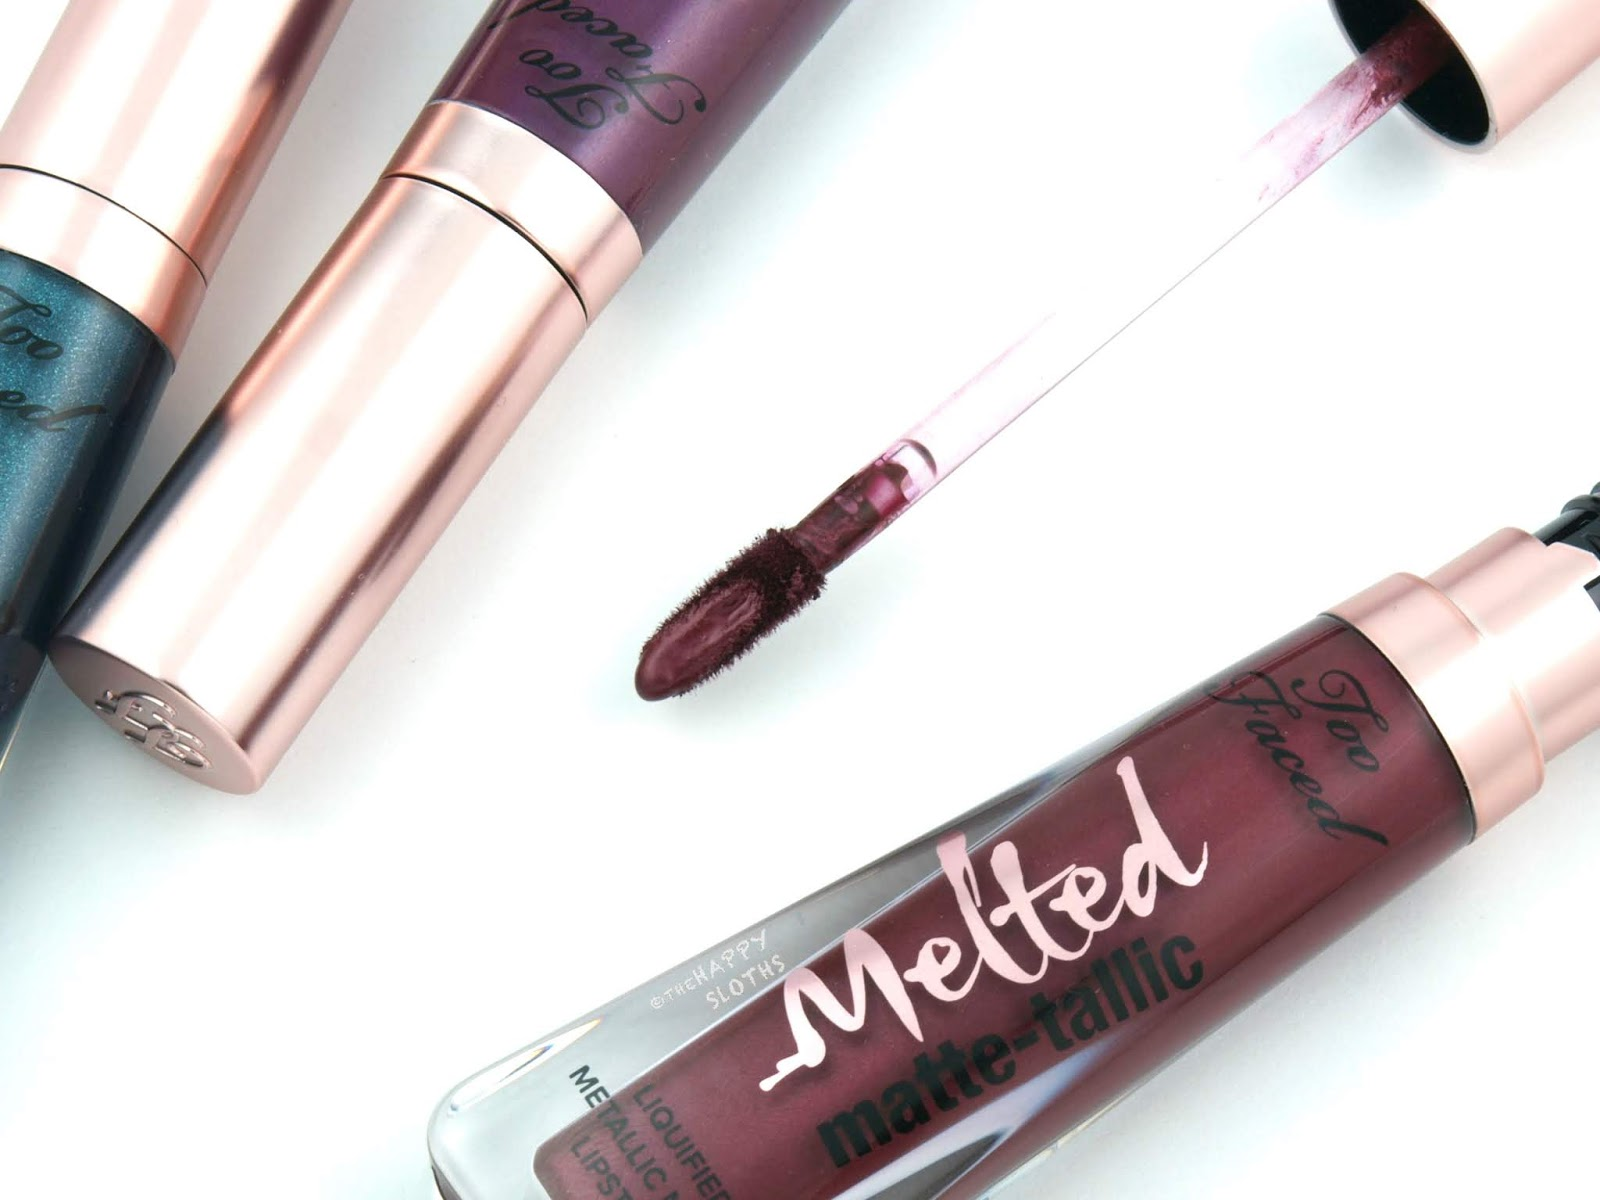 Too Faced | Melted Matte-tallic Liquified Metallic Matte Lipstick: Review and Swatches